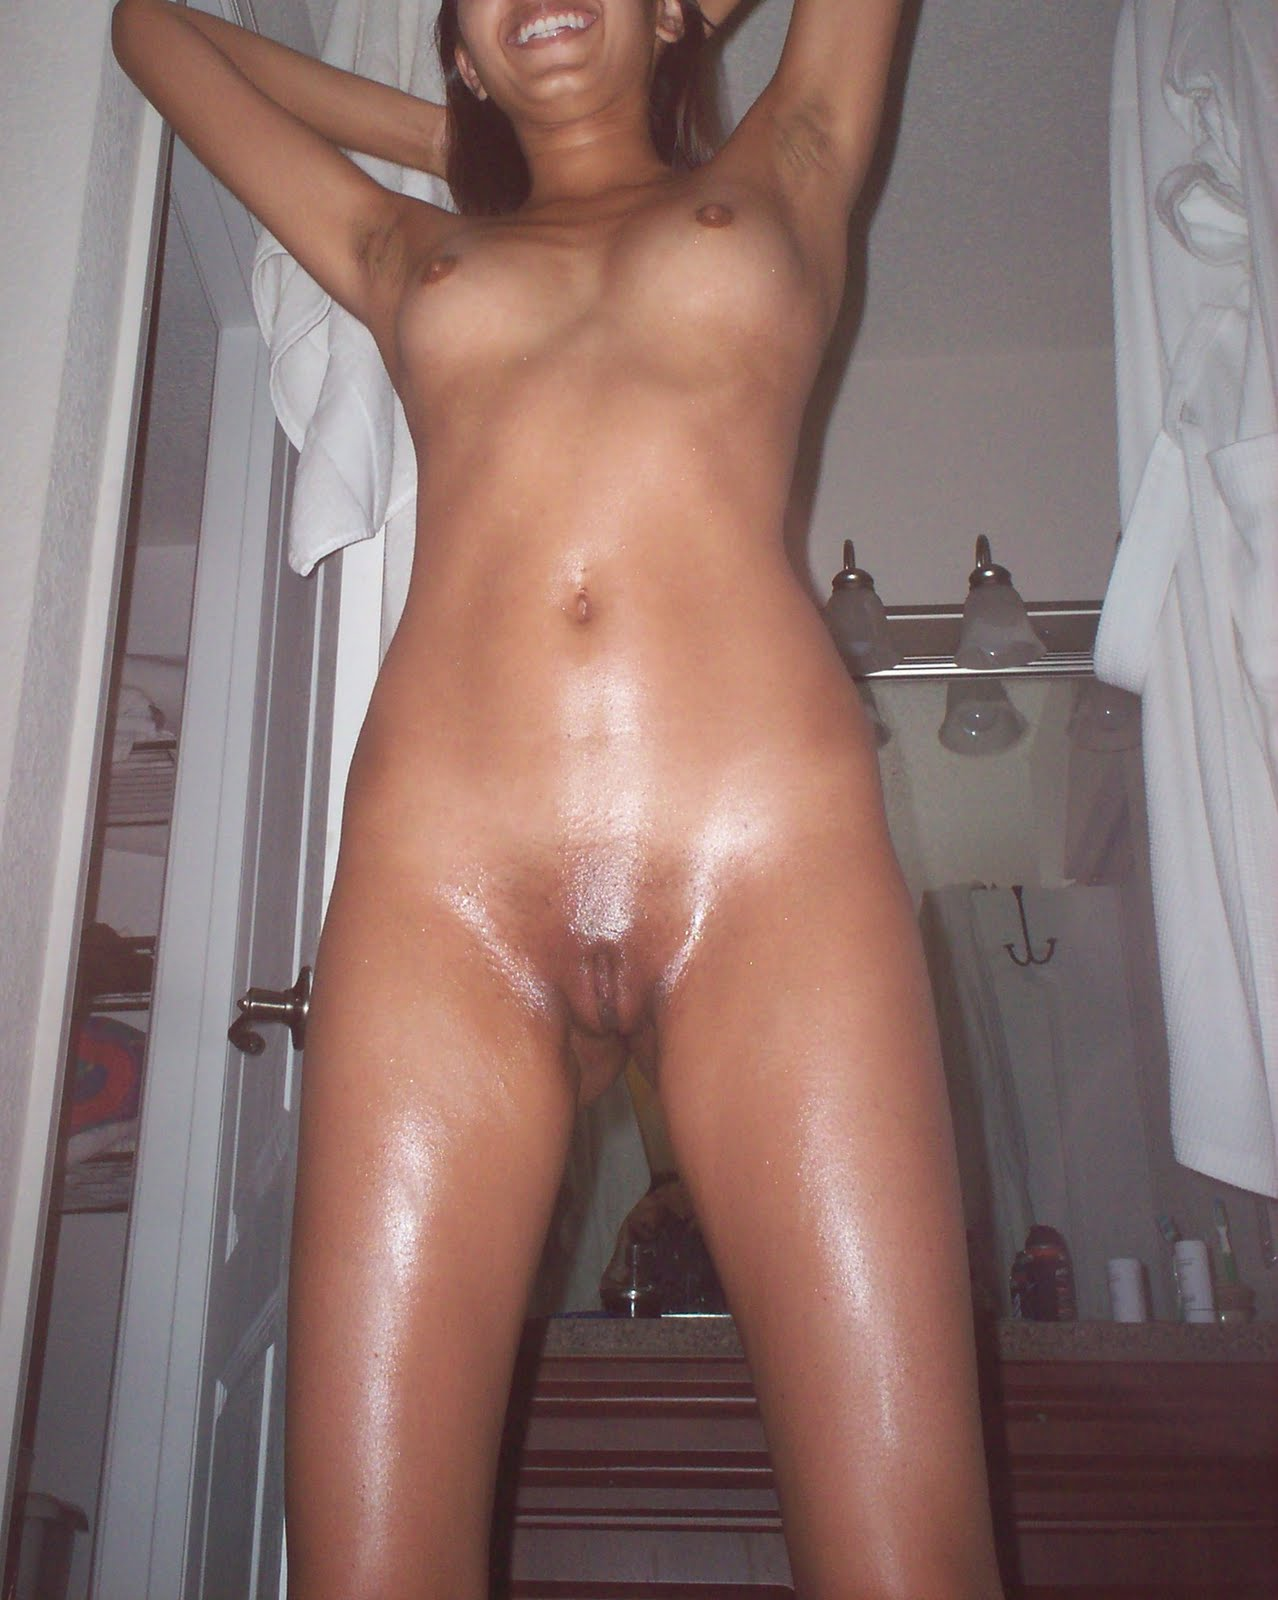 just waxed ebony ass - ass - photo xxx